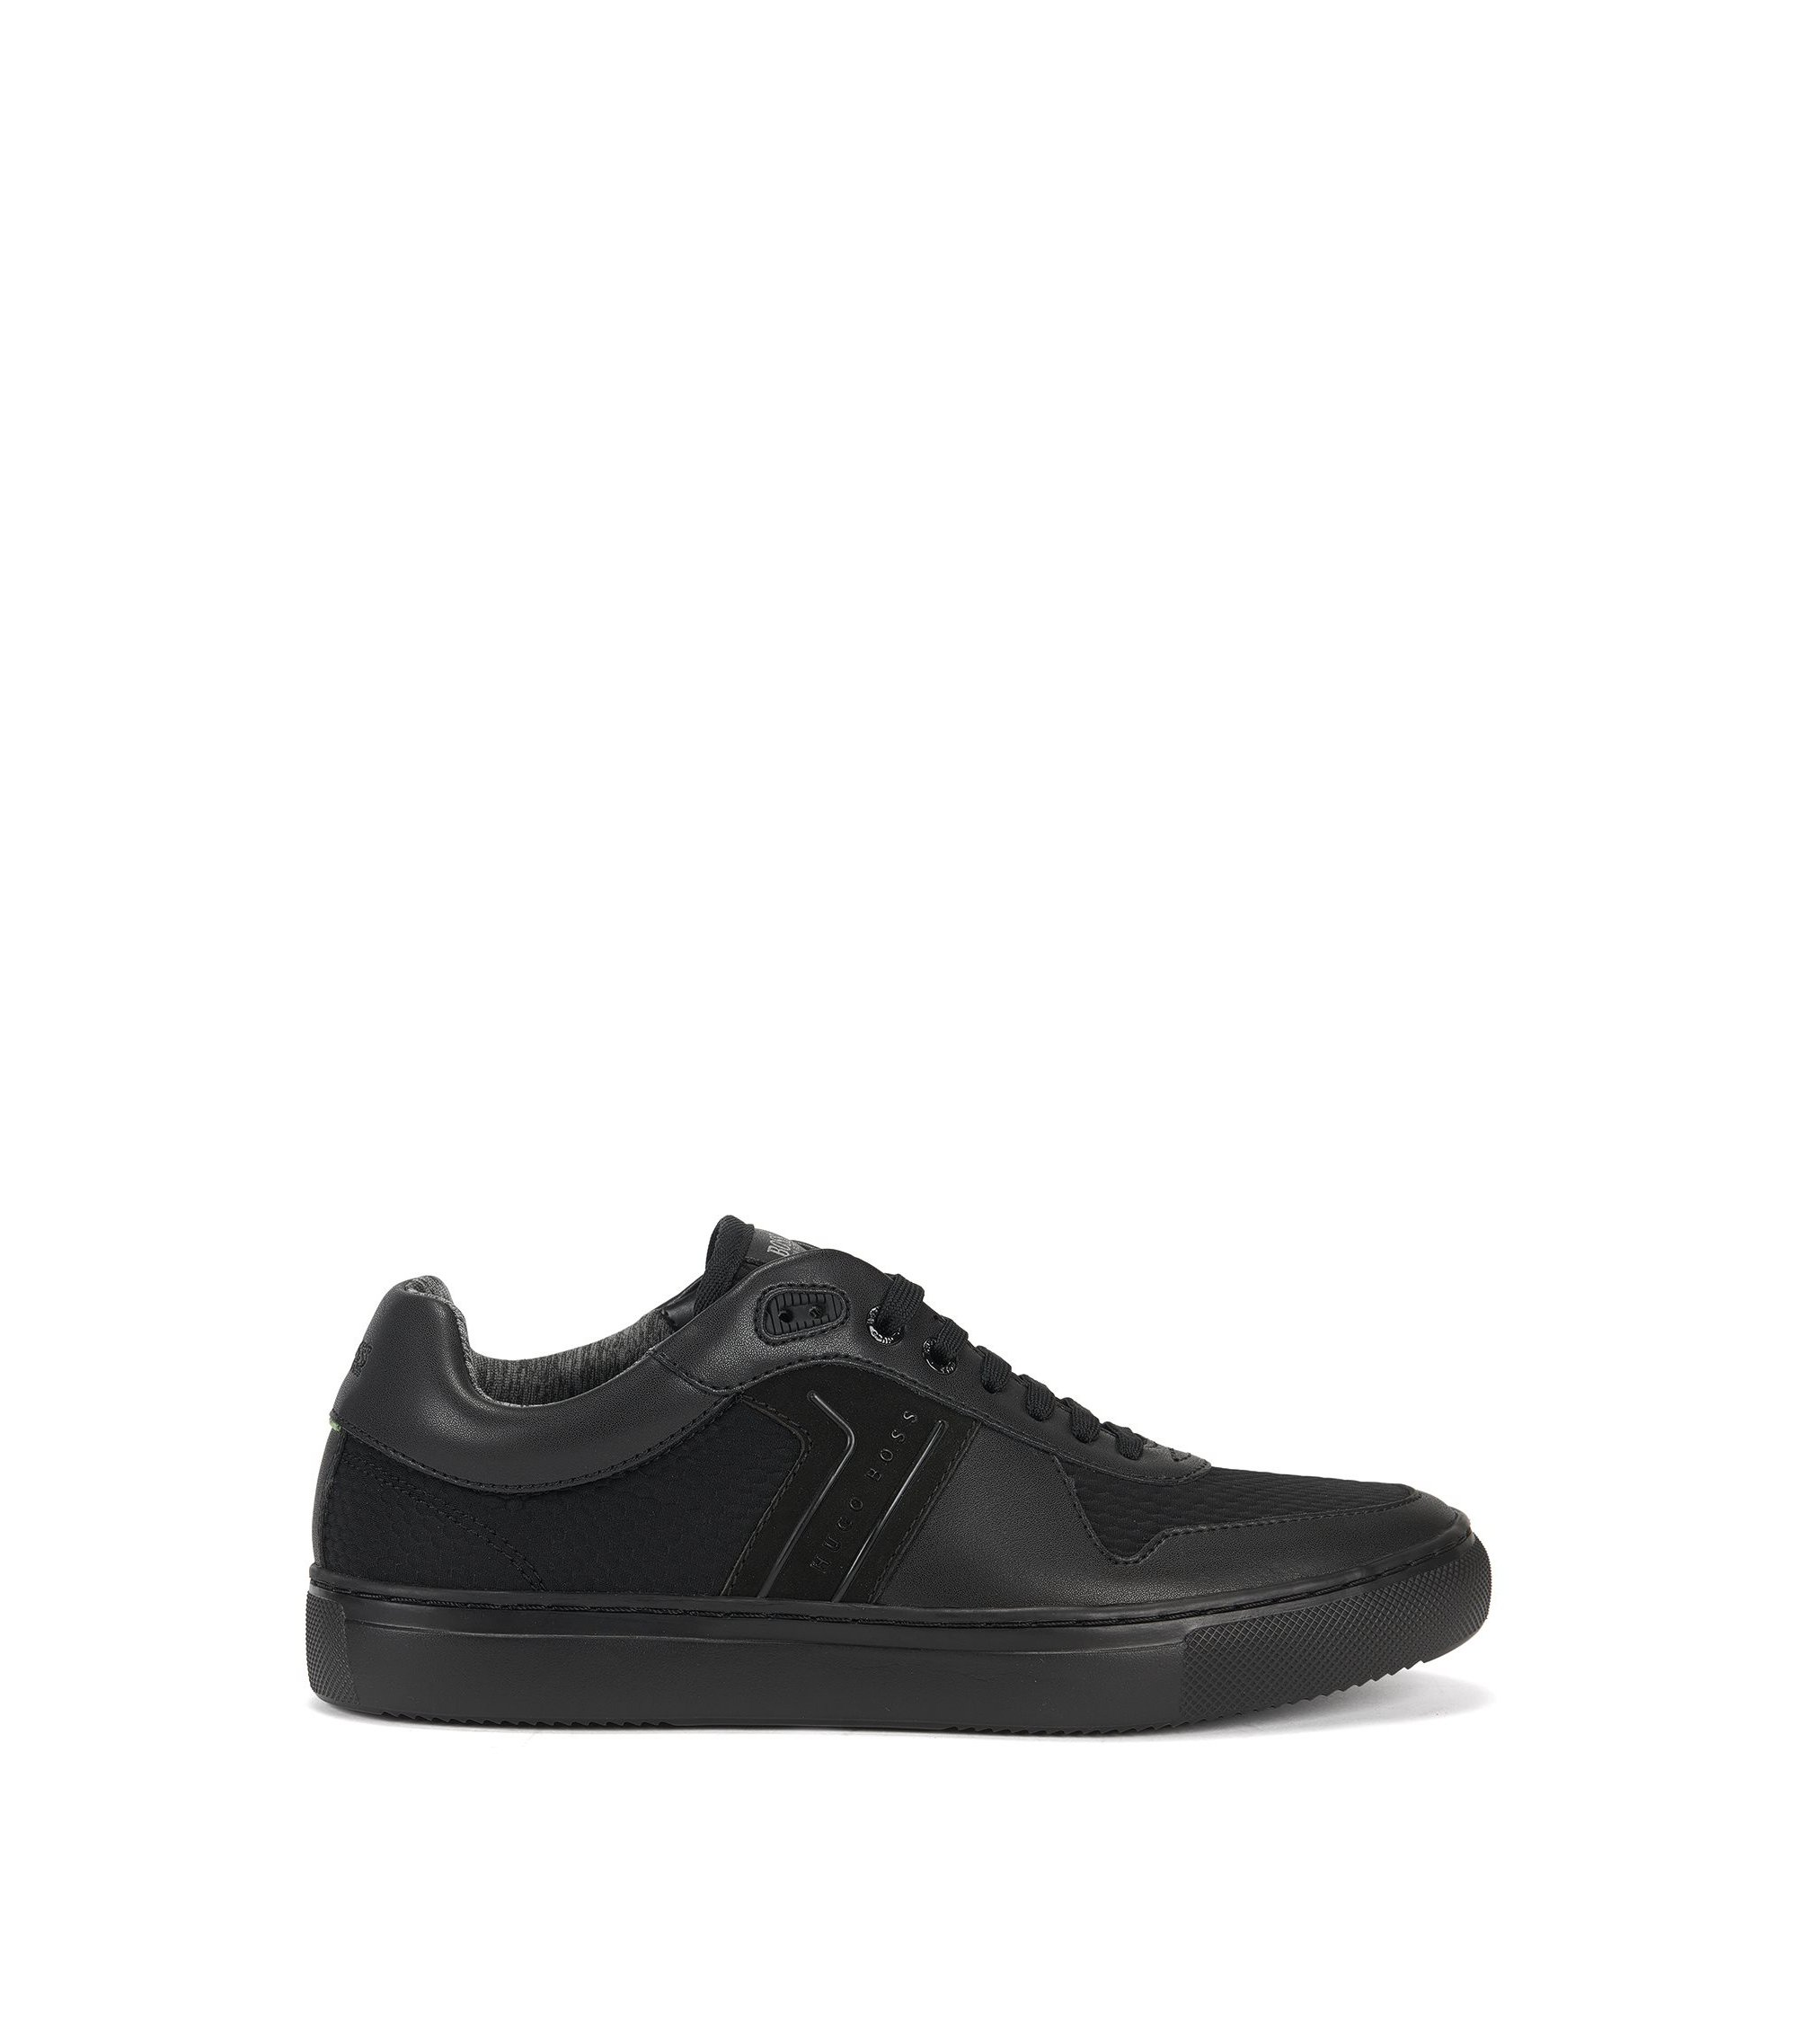 Tennis-style trainers with Strobel construction, Black